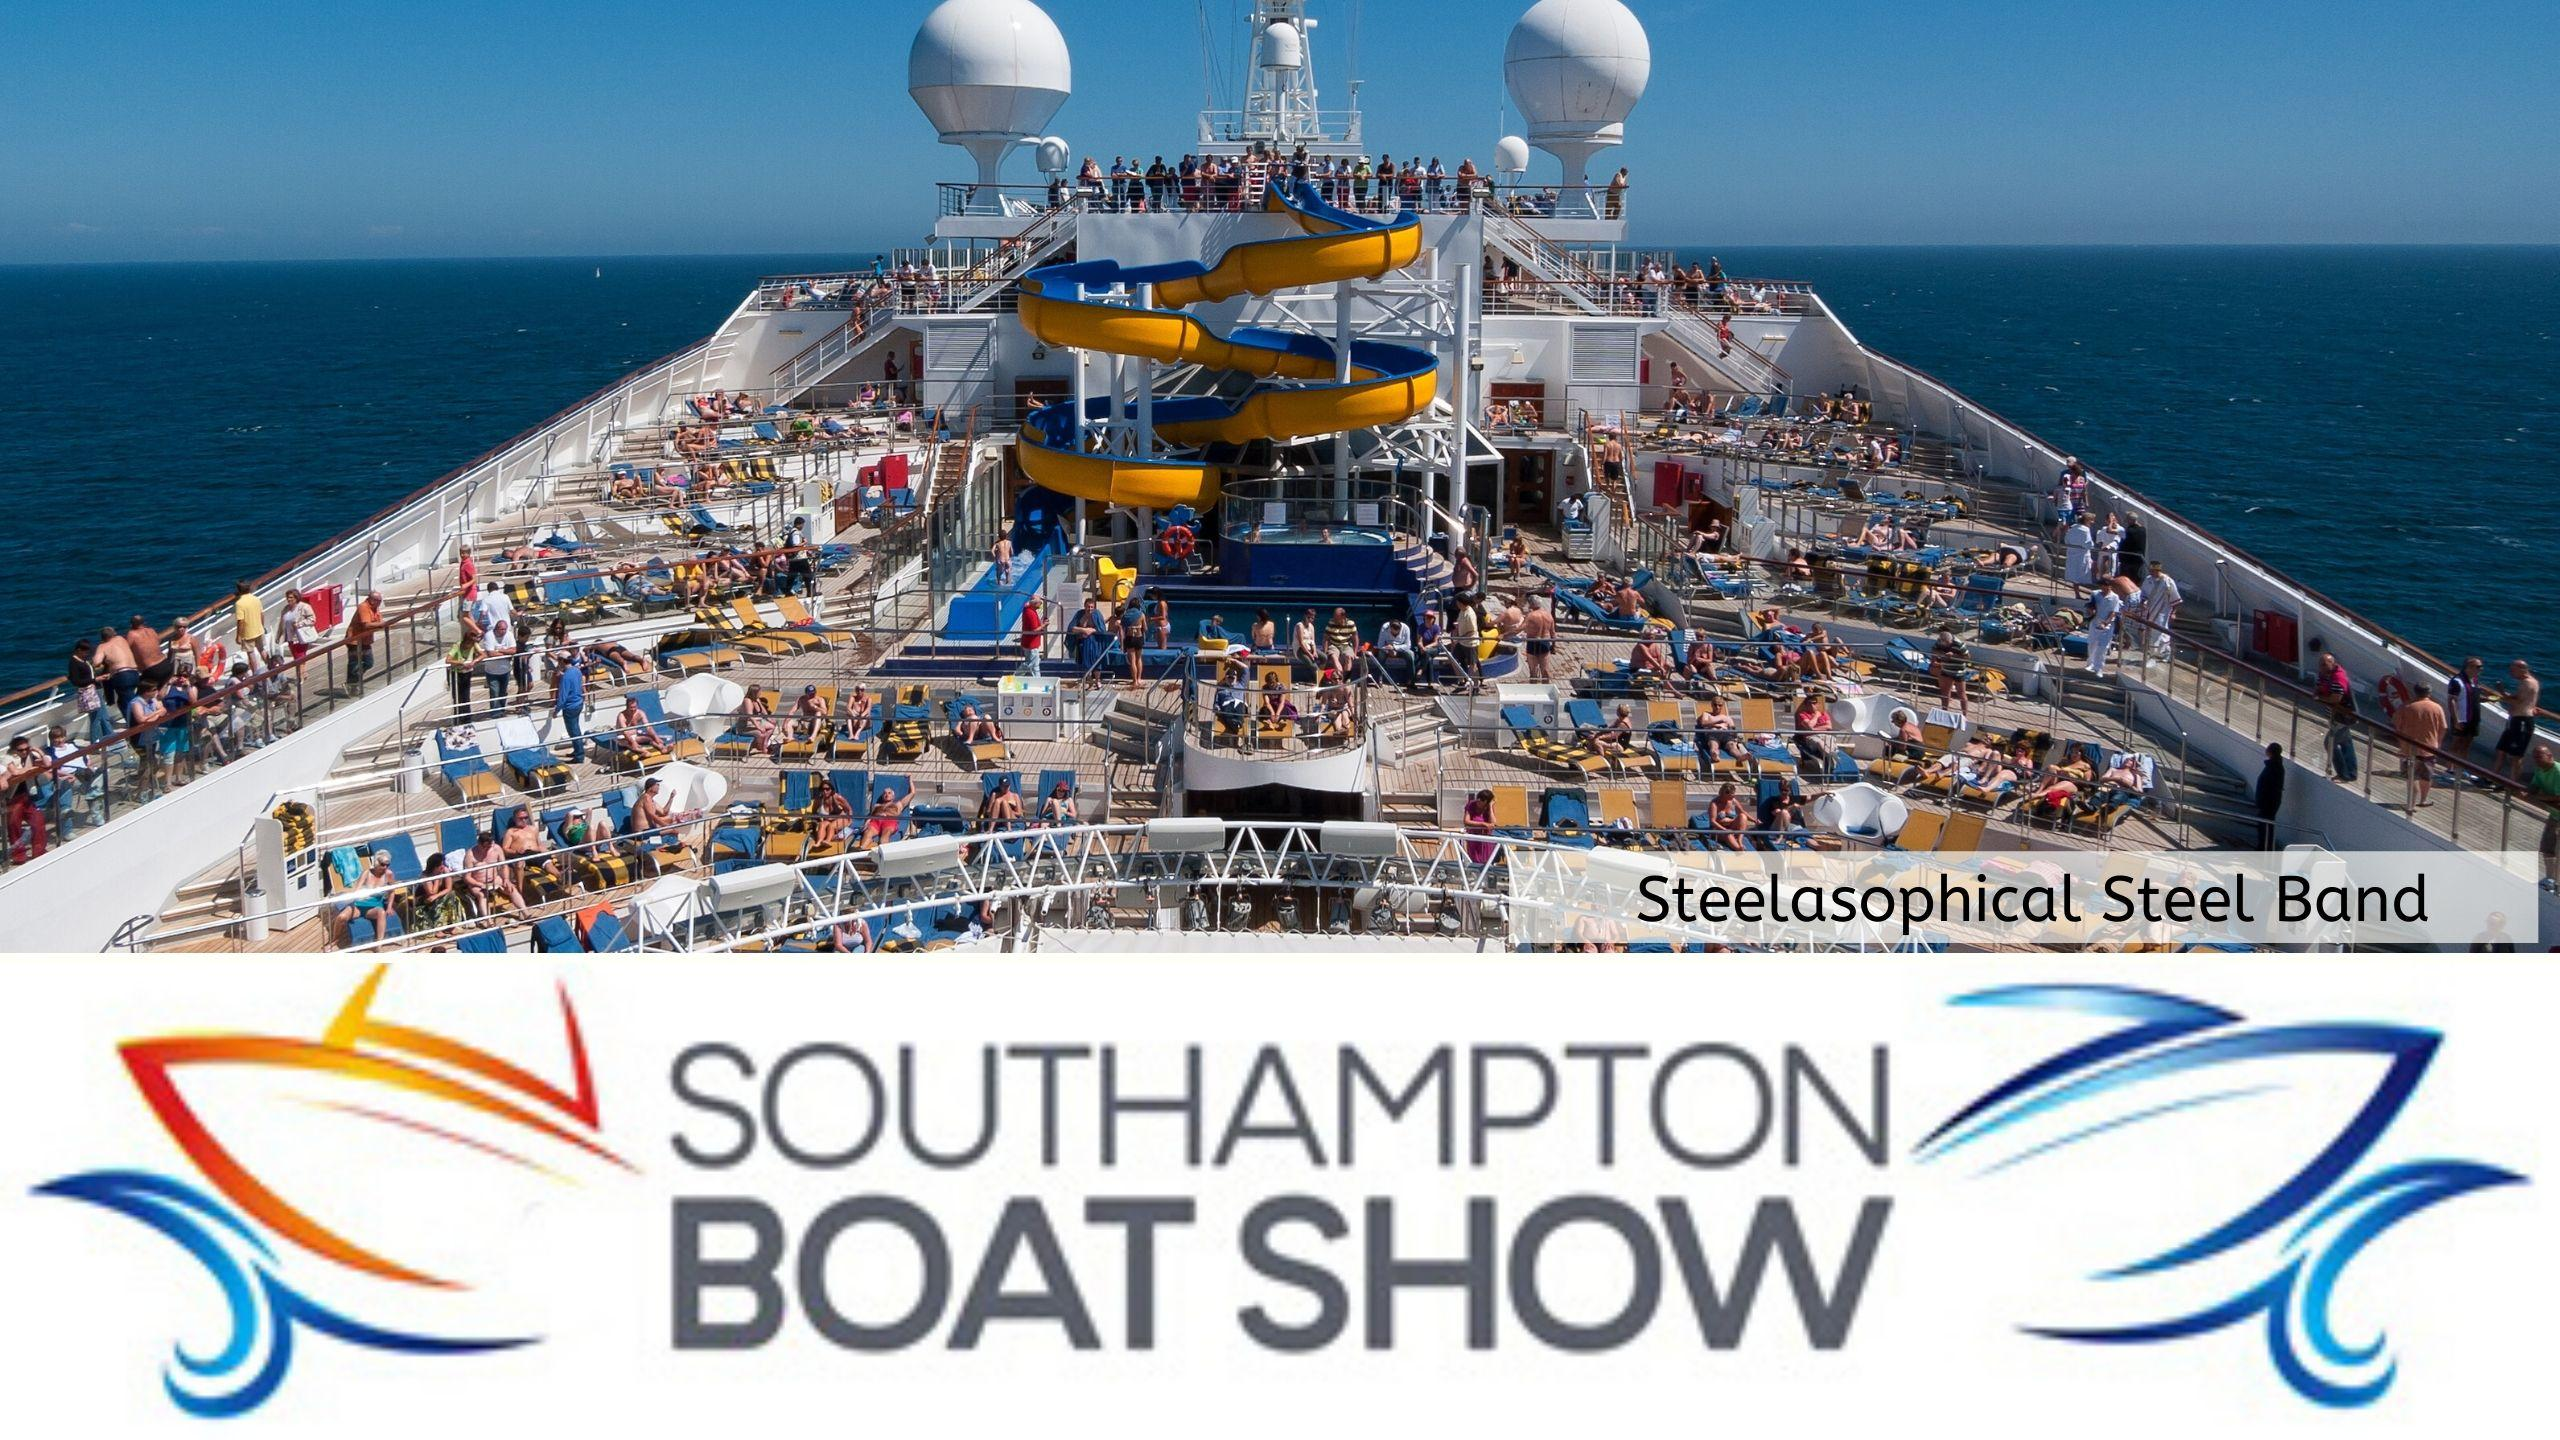 Steelasophical Steel Band Southampton Boat Show Yacht Market d333